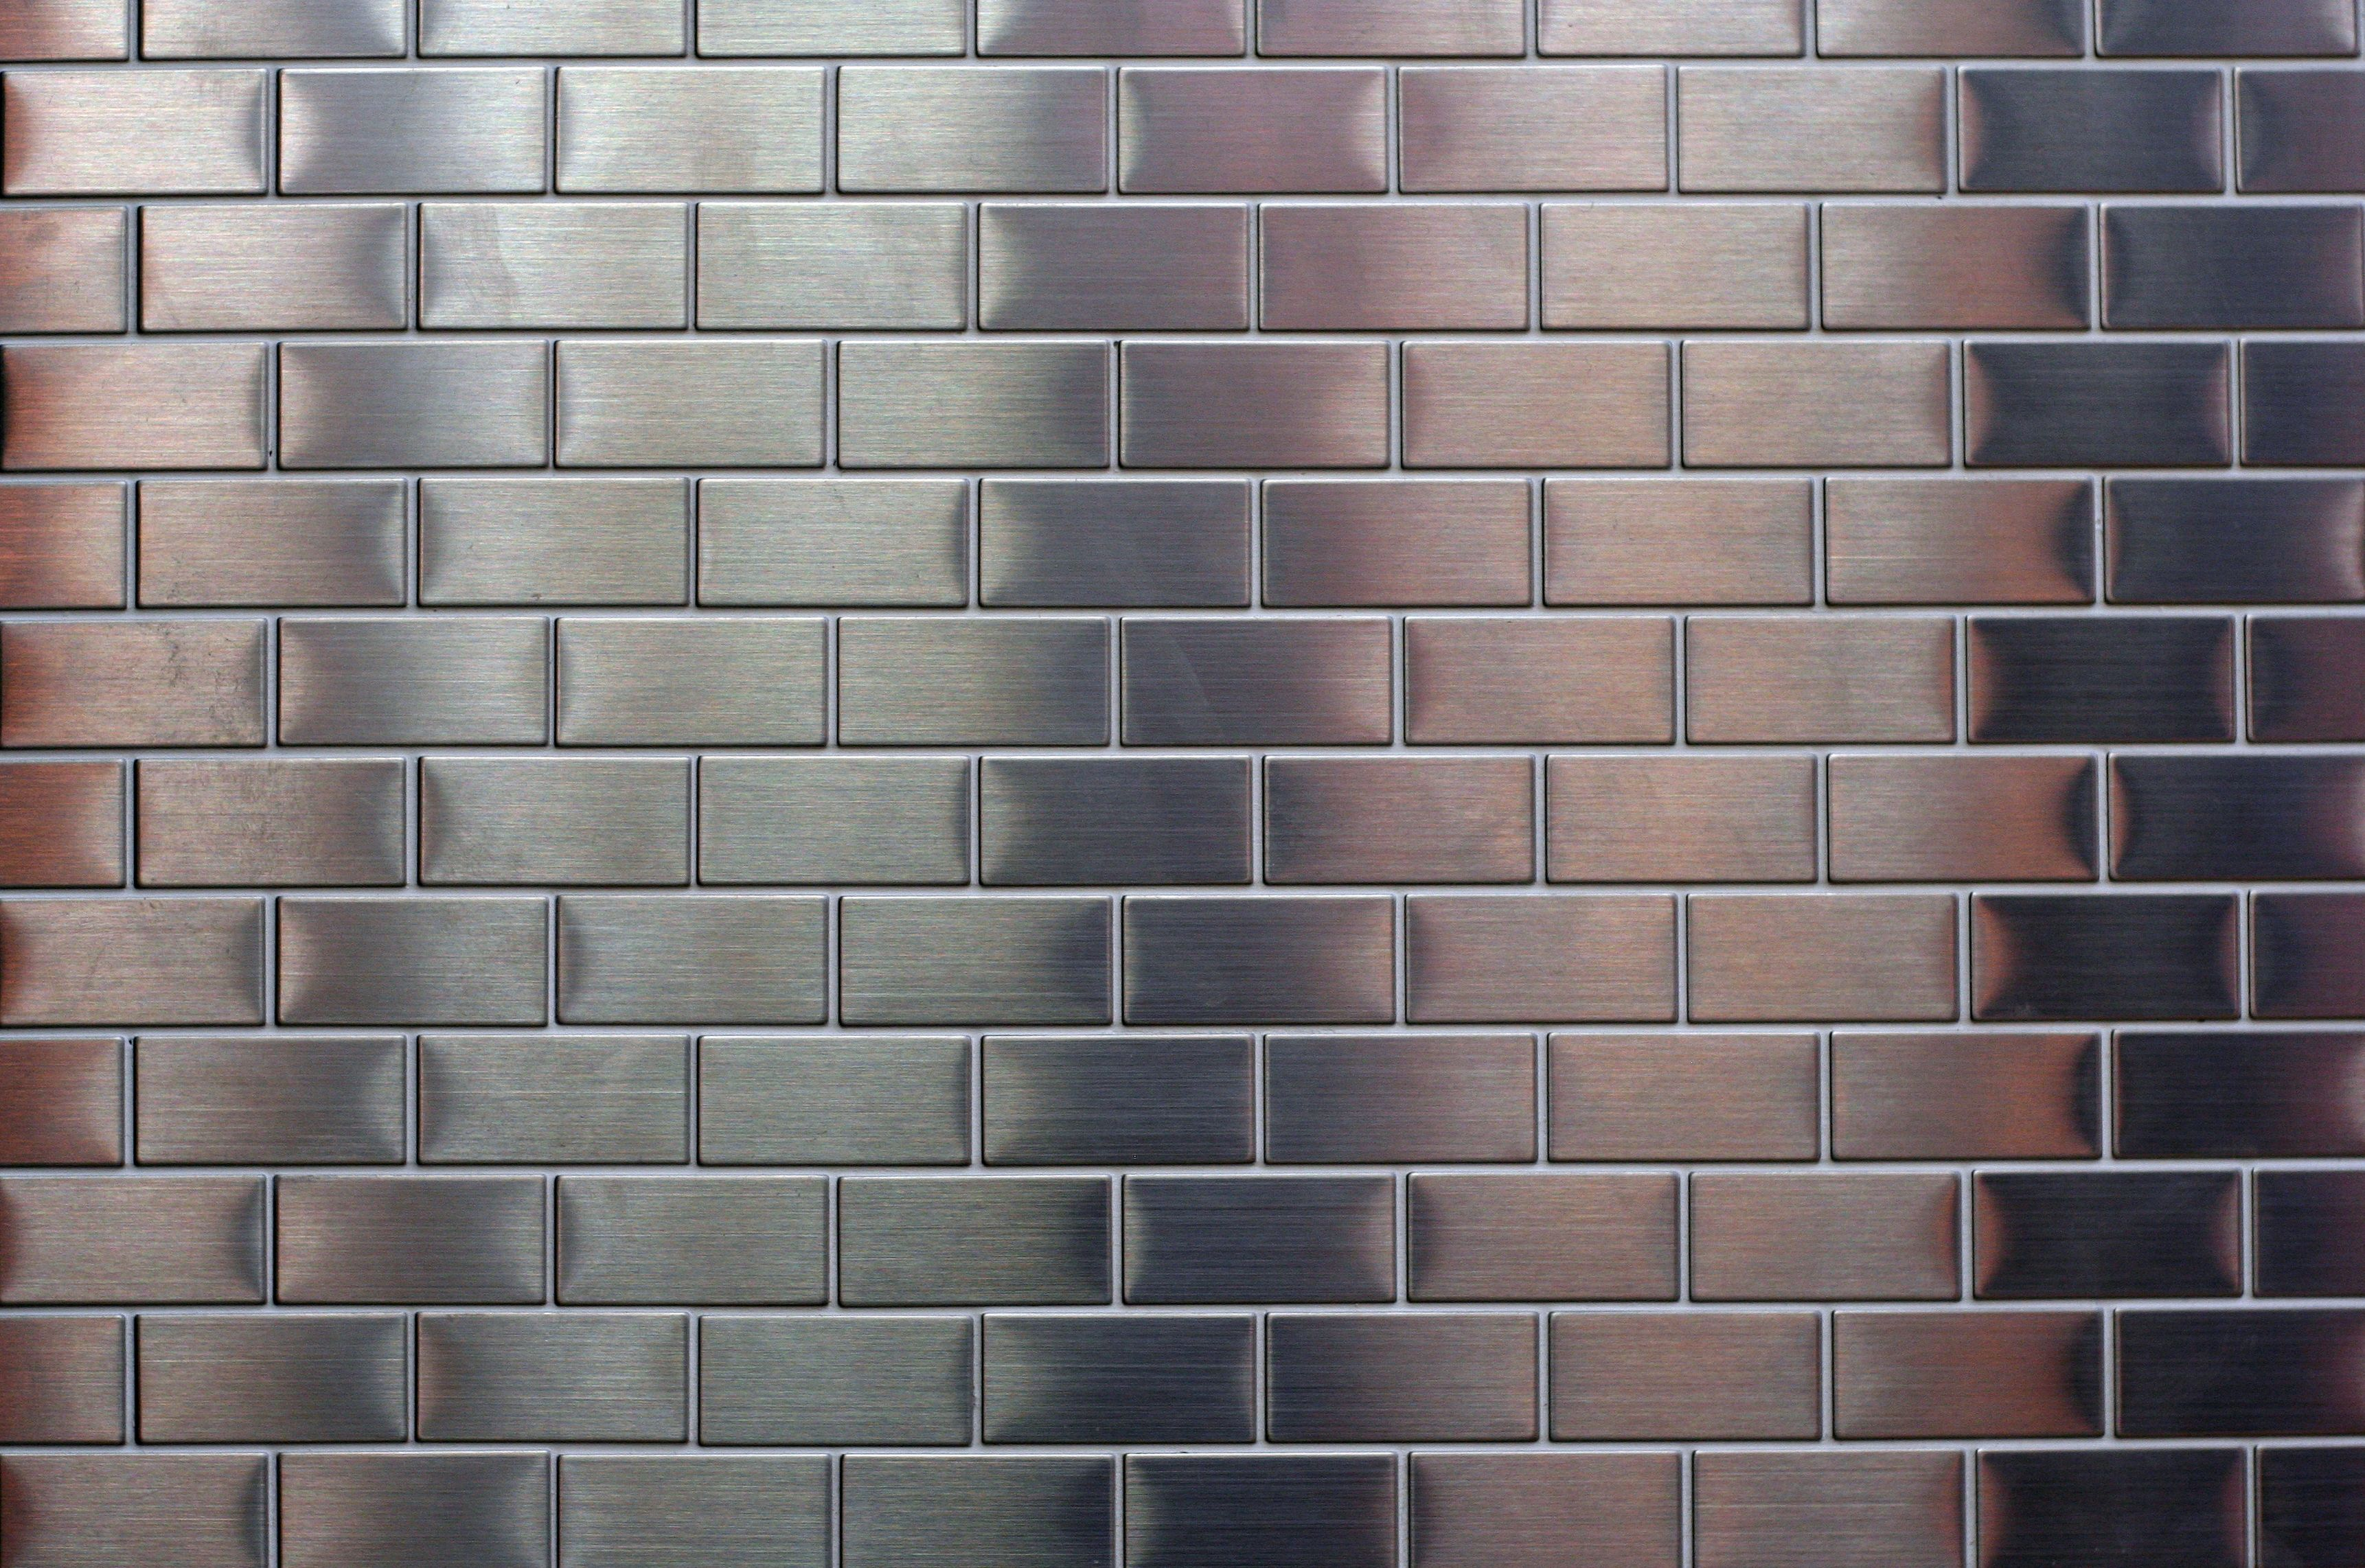 Shiny metallic small silver metal tile background free